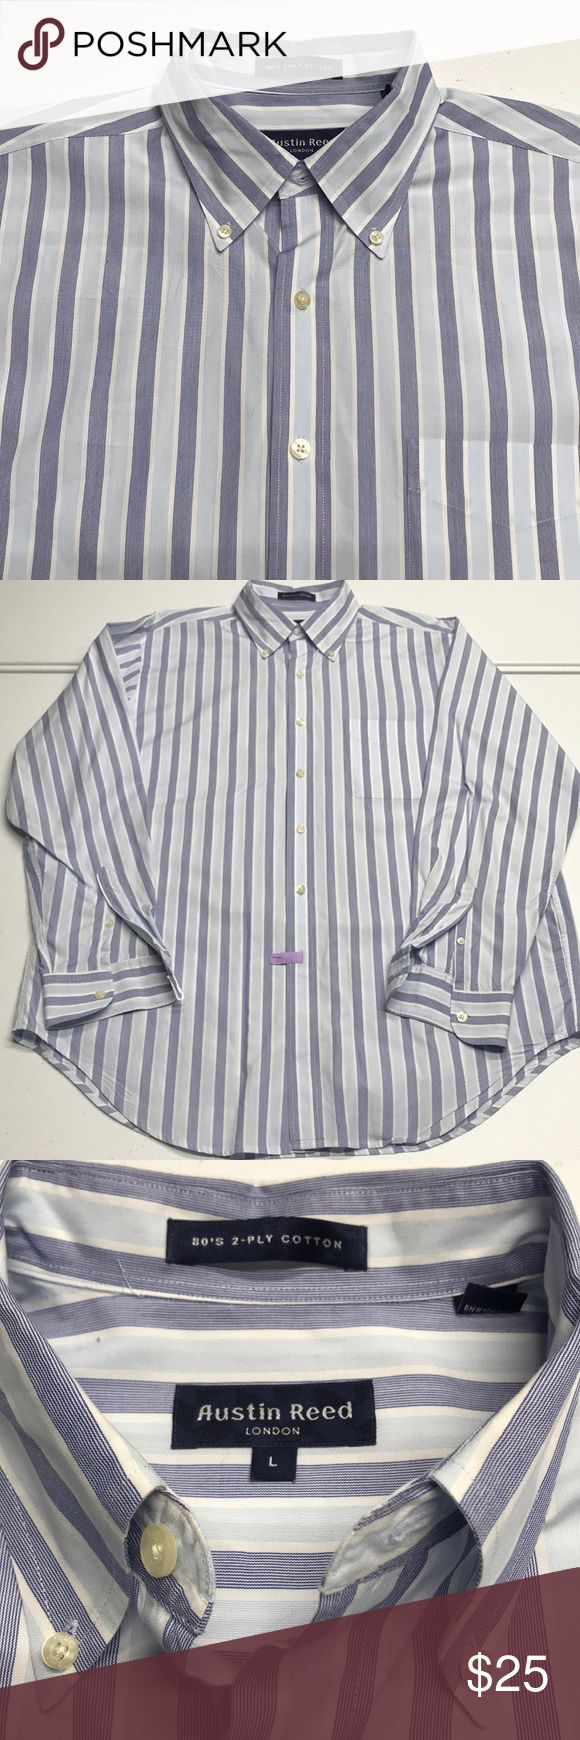 Austin Reed London Mens Blue Striped Dress Shirt In 2020 Blue Striped Dress Shirt Mens Shirt Dress Blue Man